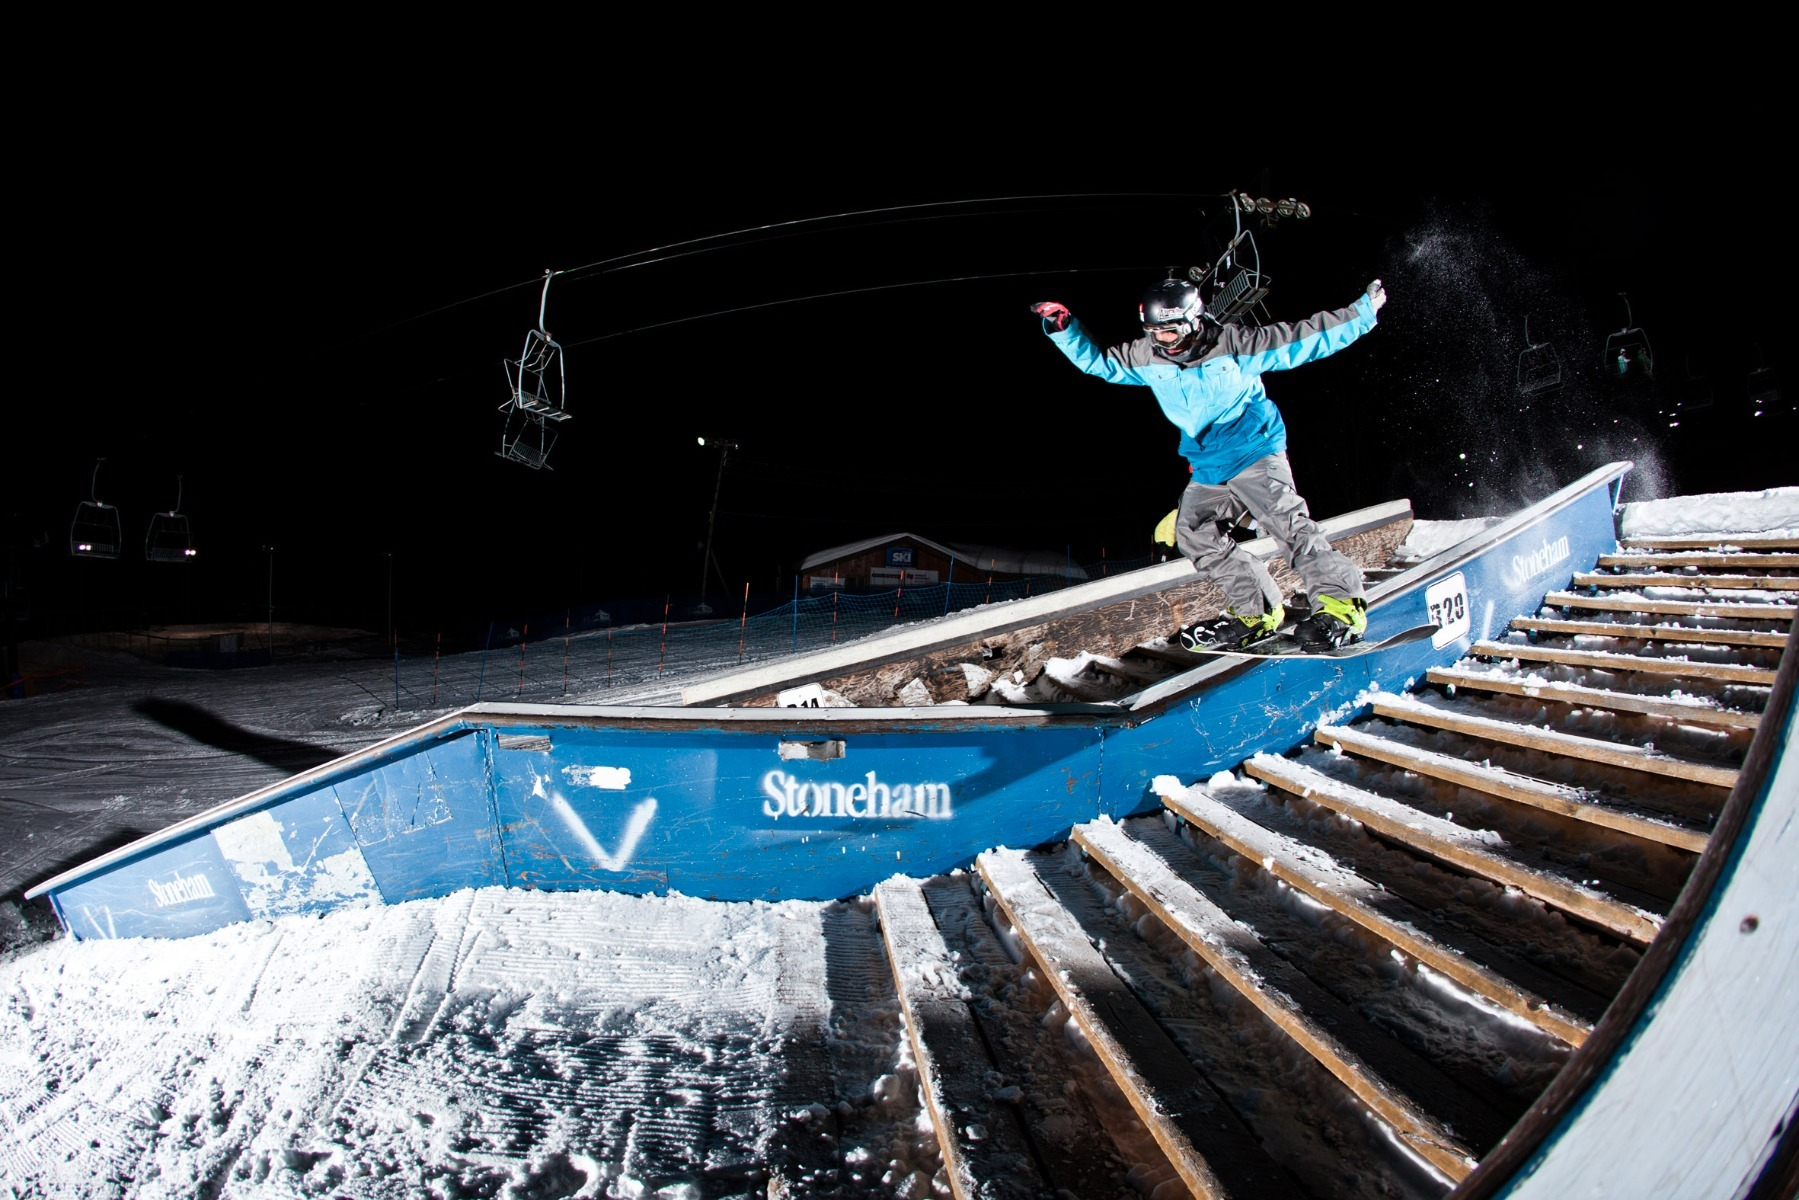 Snowboarder Julien Beaulieu slides a staircase setup in the Stoneham snowpark. Photo: Oliver Croteau/ Courtesy of Stoneham Mountain.undefined